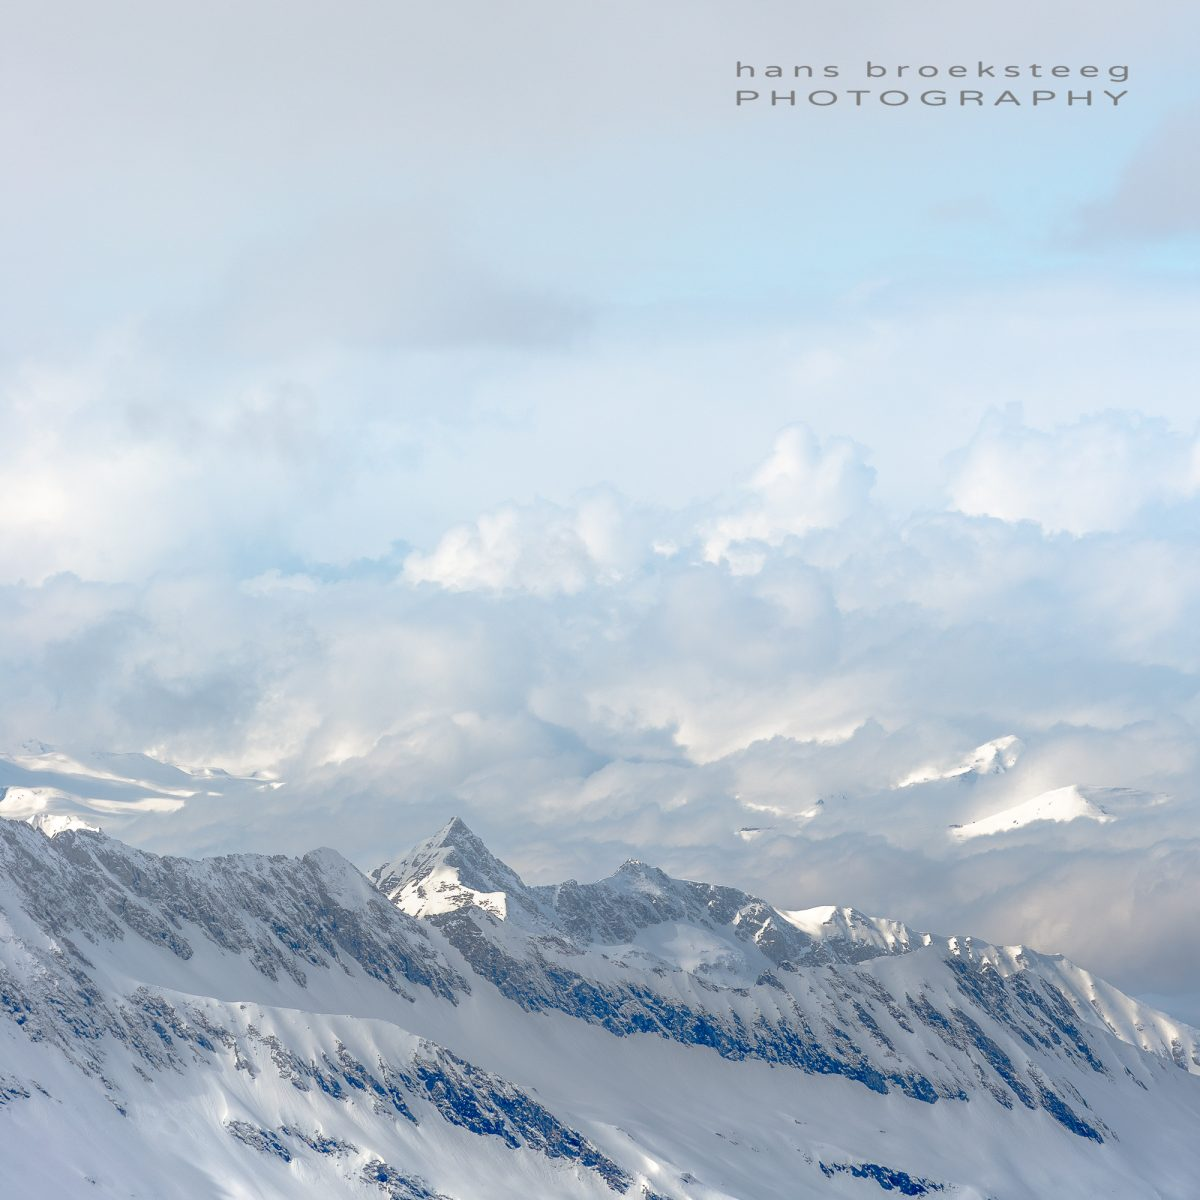 Clouds and mountains in the Austrian Alps